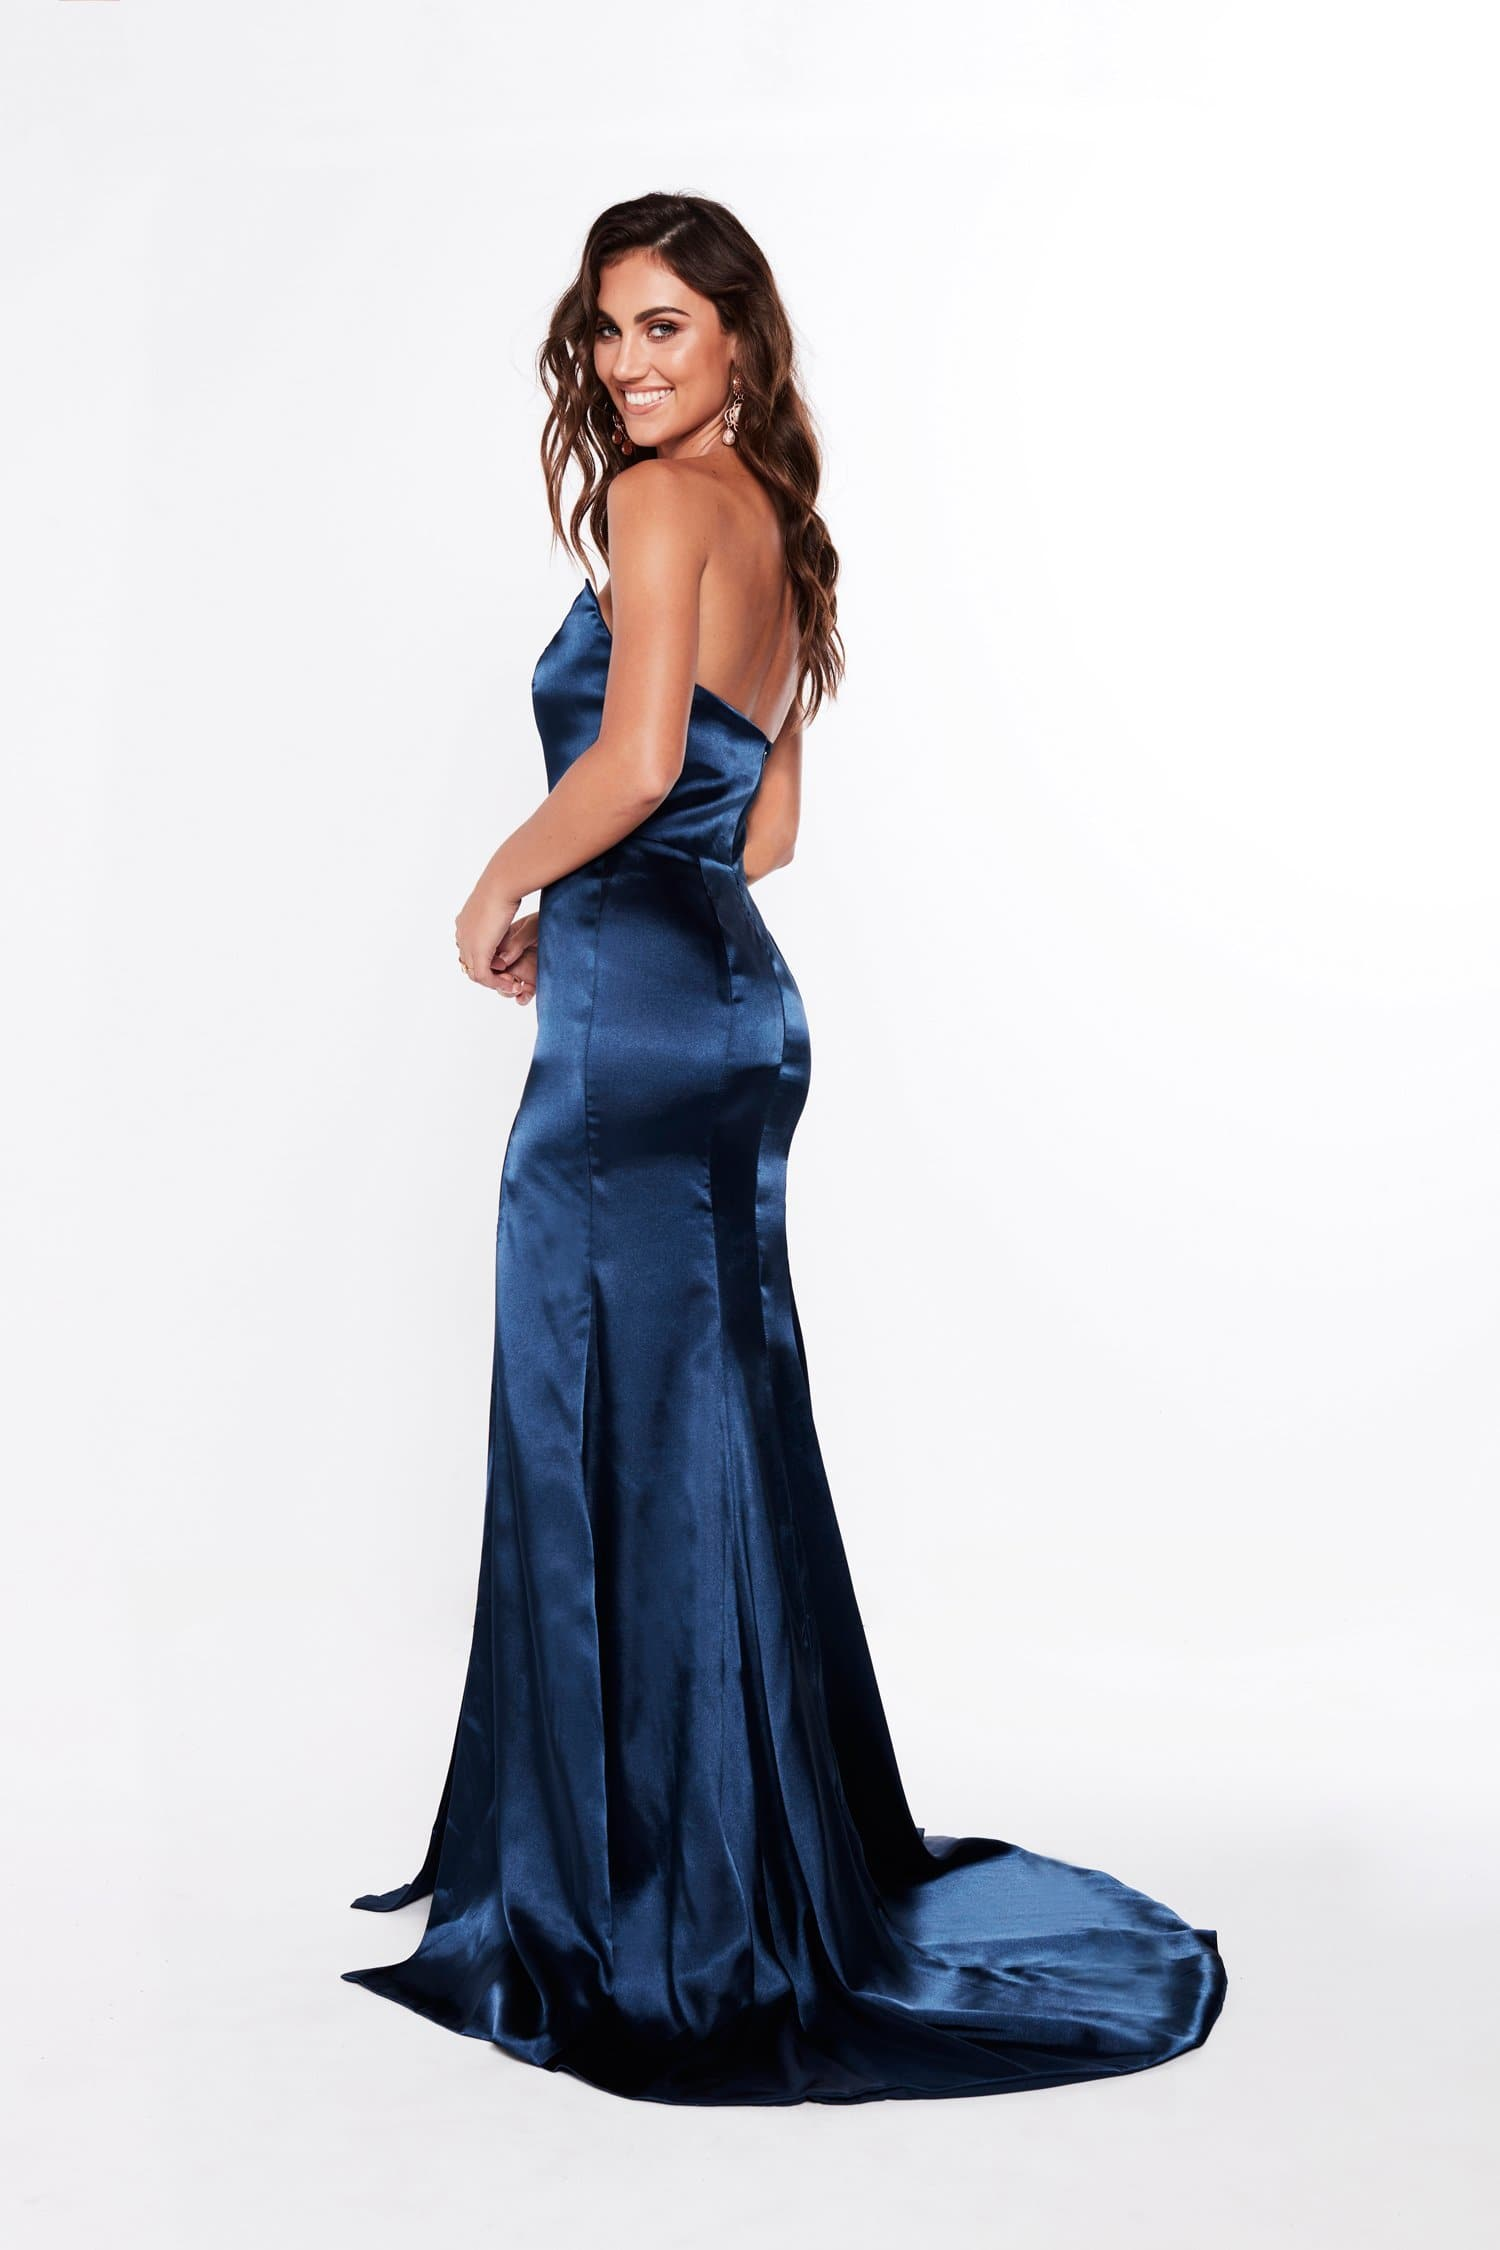 A&N Amelia - Strapless Satin Formal Gown with Side Slit